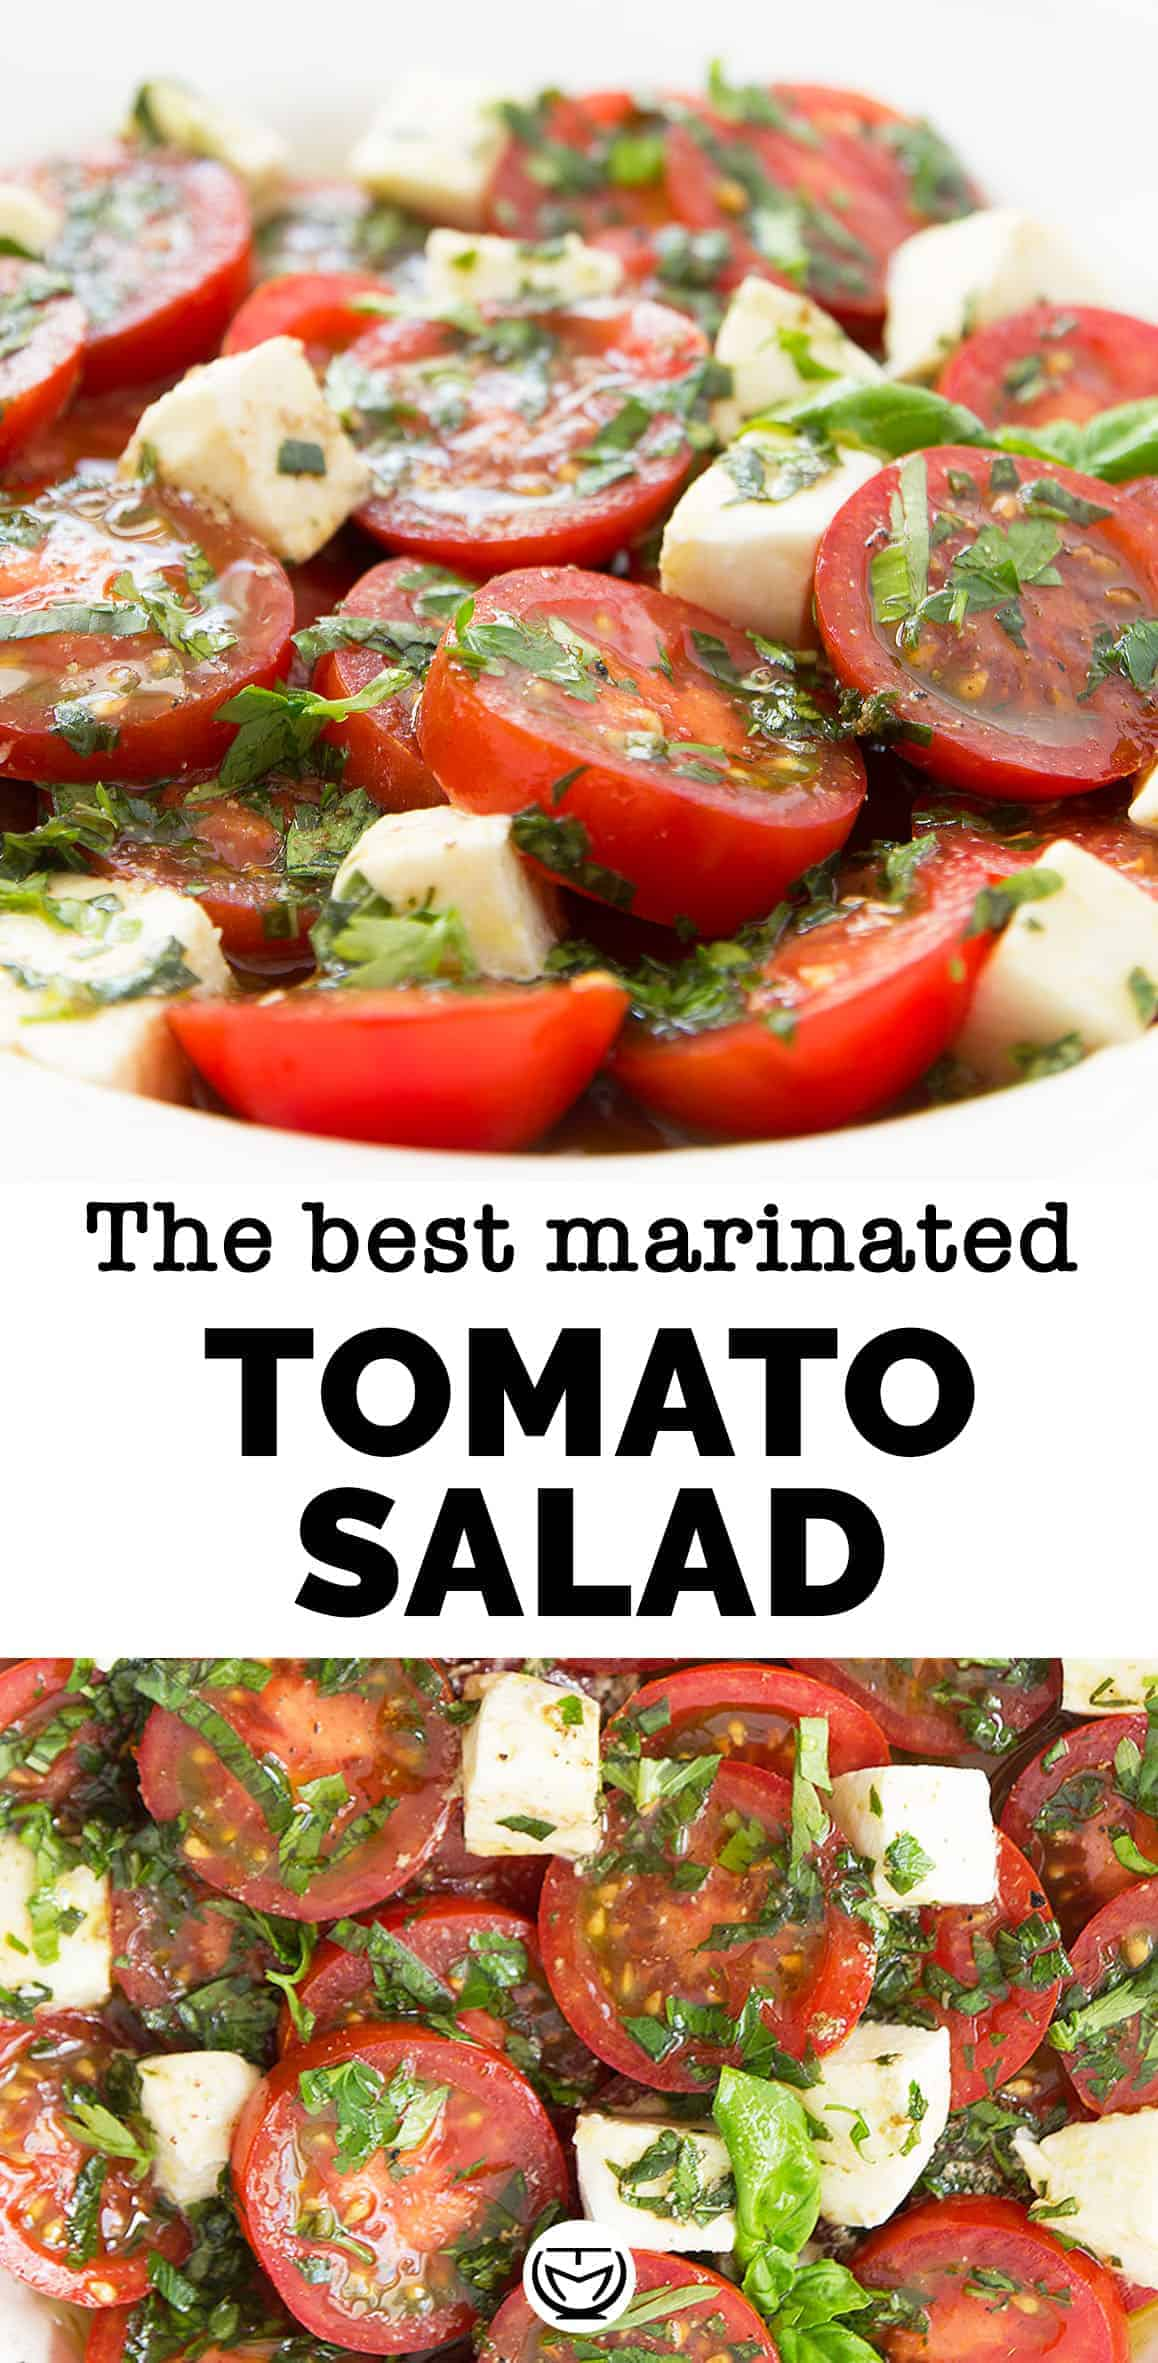 The best marinated tomato salad perfect for your summer gatherings!